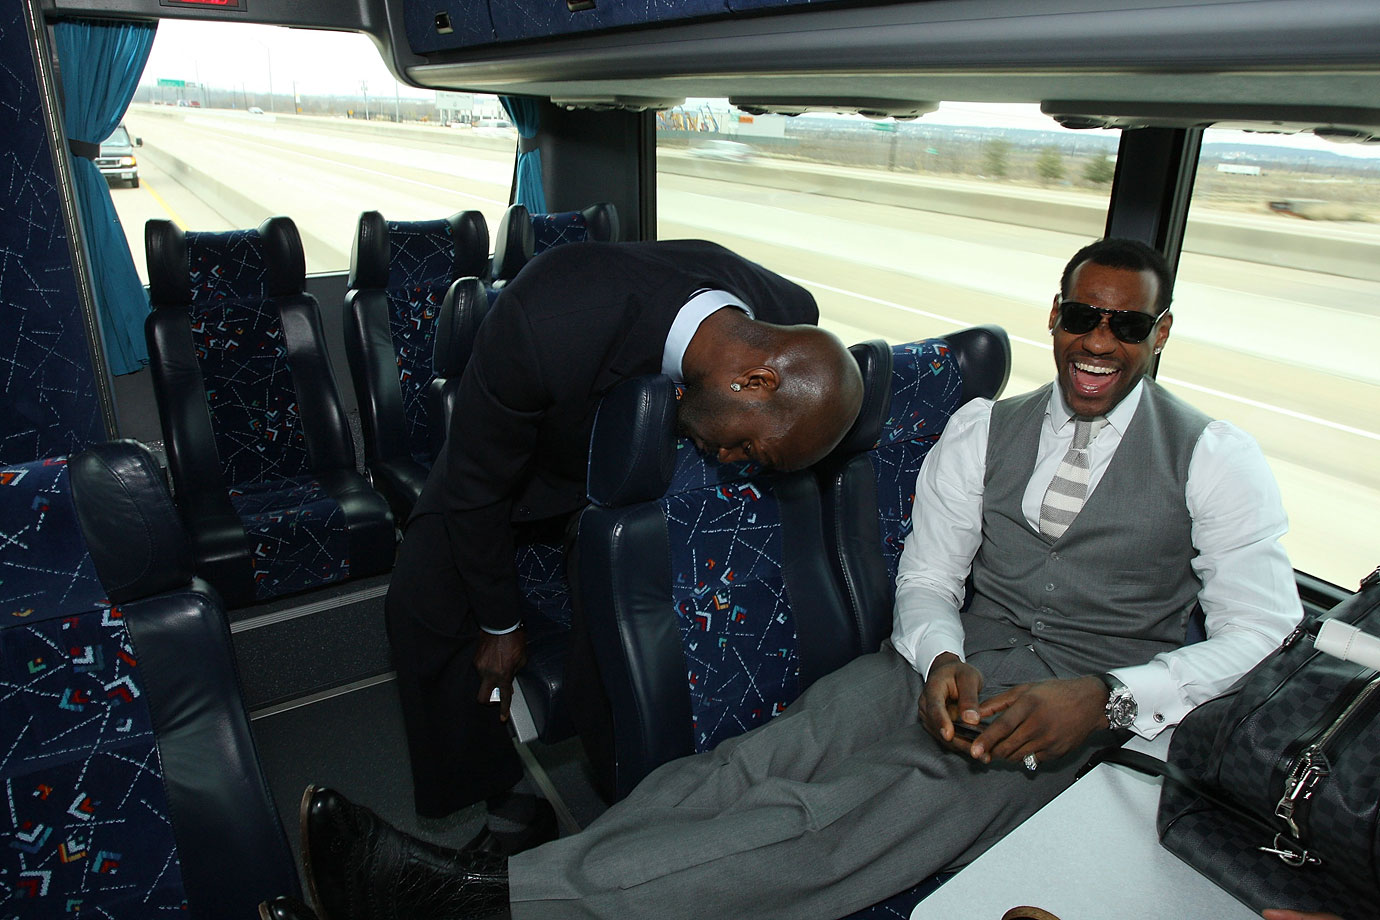 Kevin Garnett and LeBron James share a laugh on the bus ride to the stadium prior to the 2010 NBA All-Star game in Dallas.